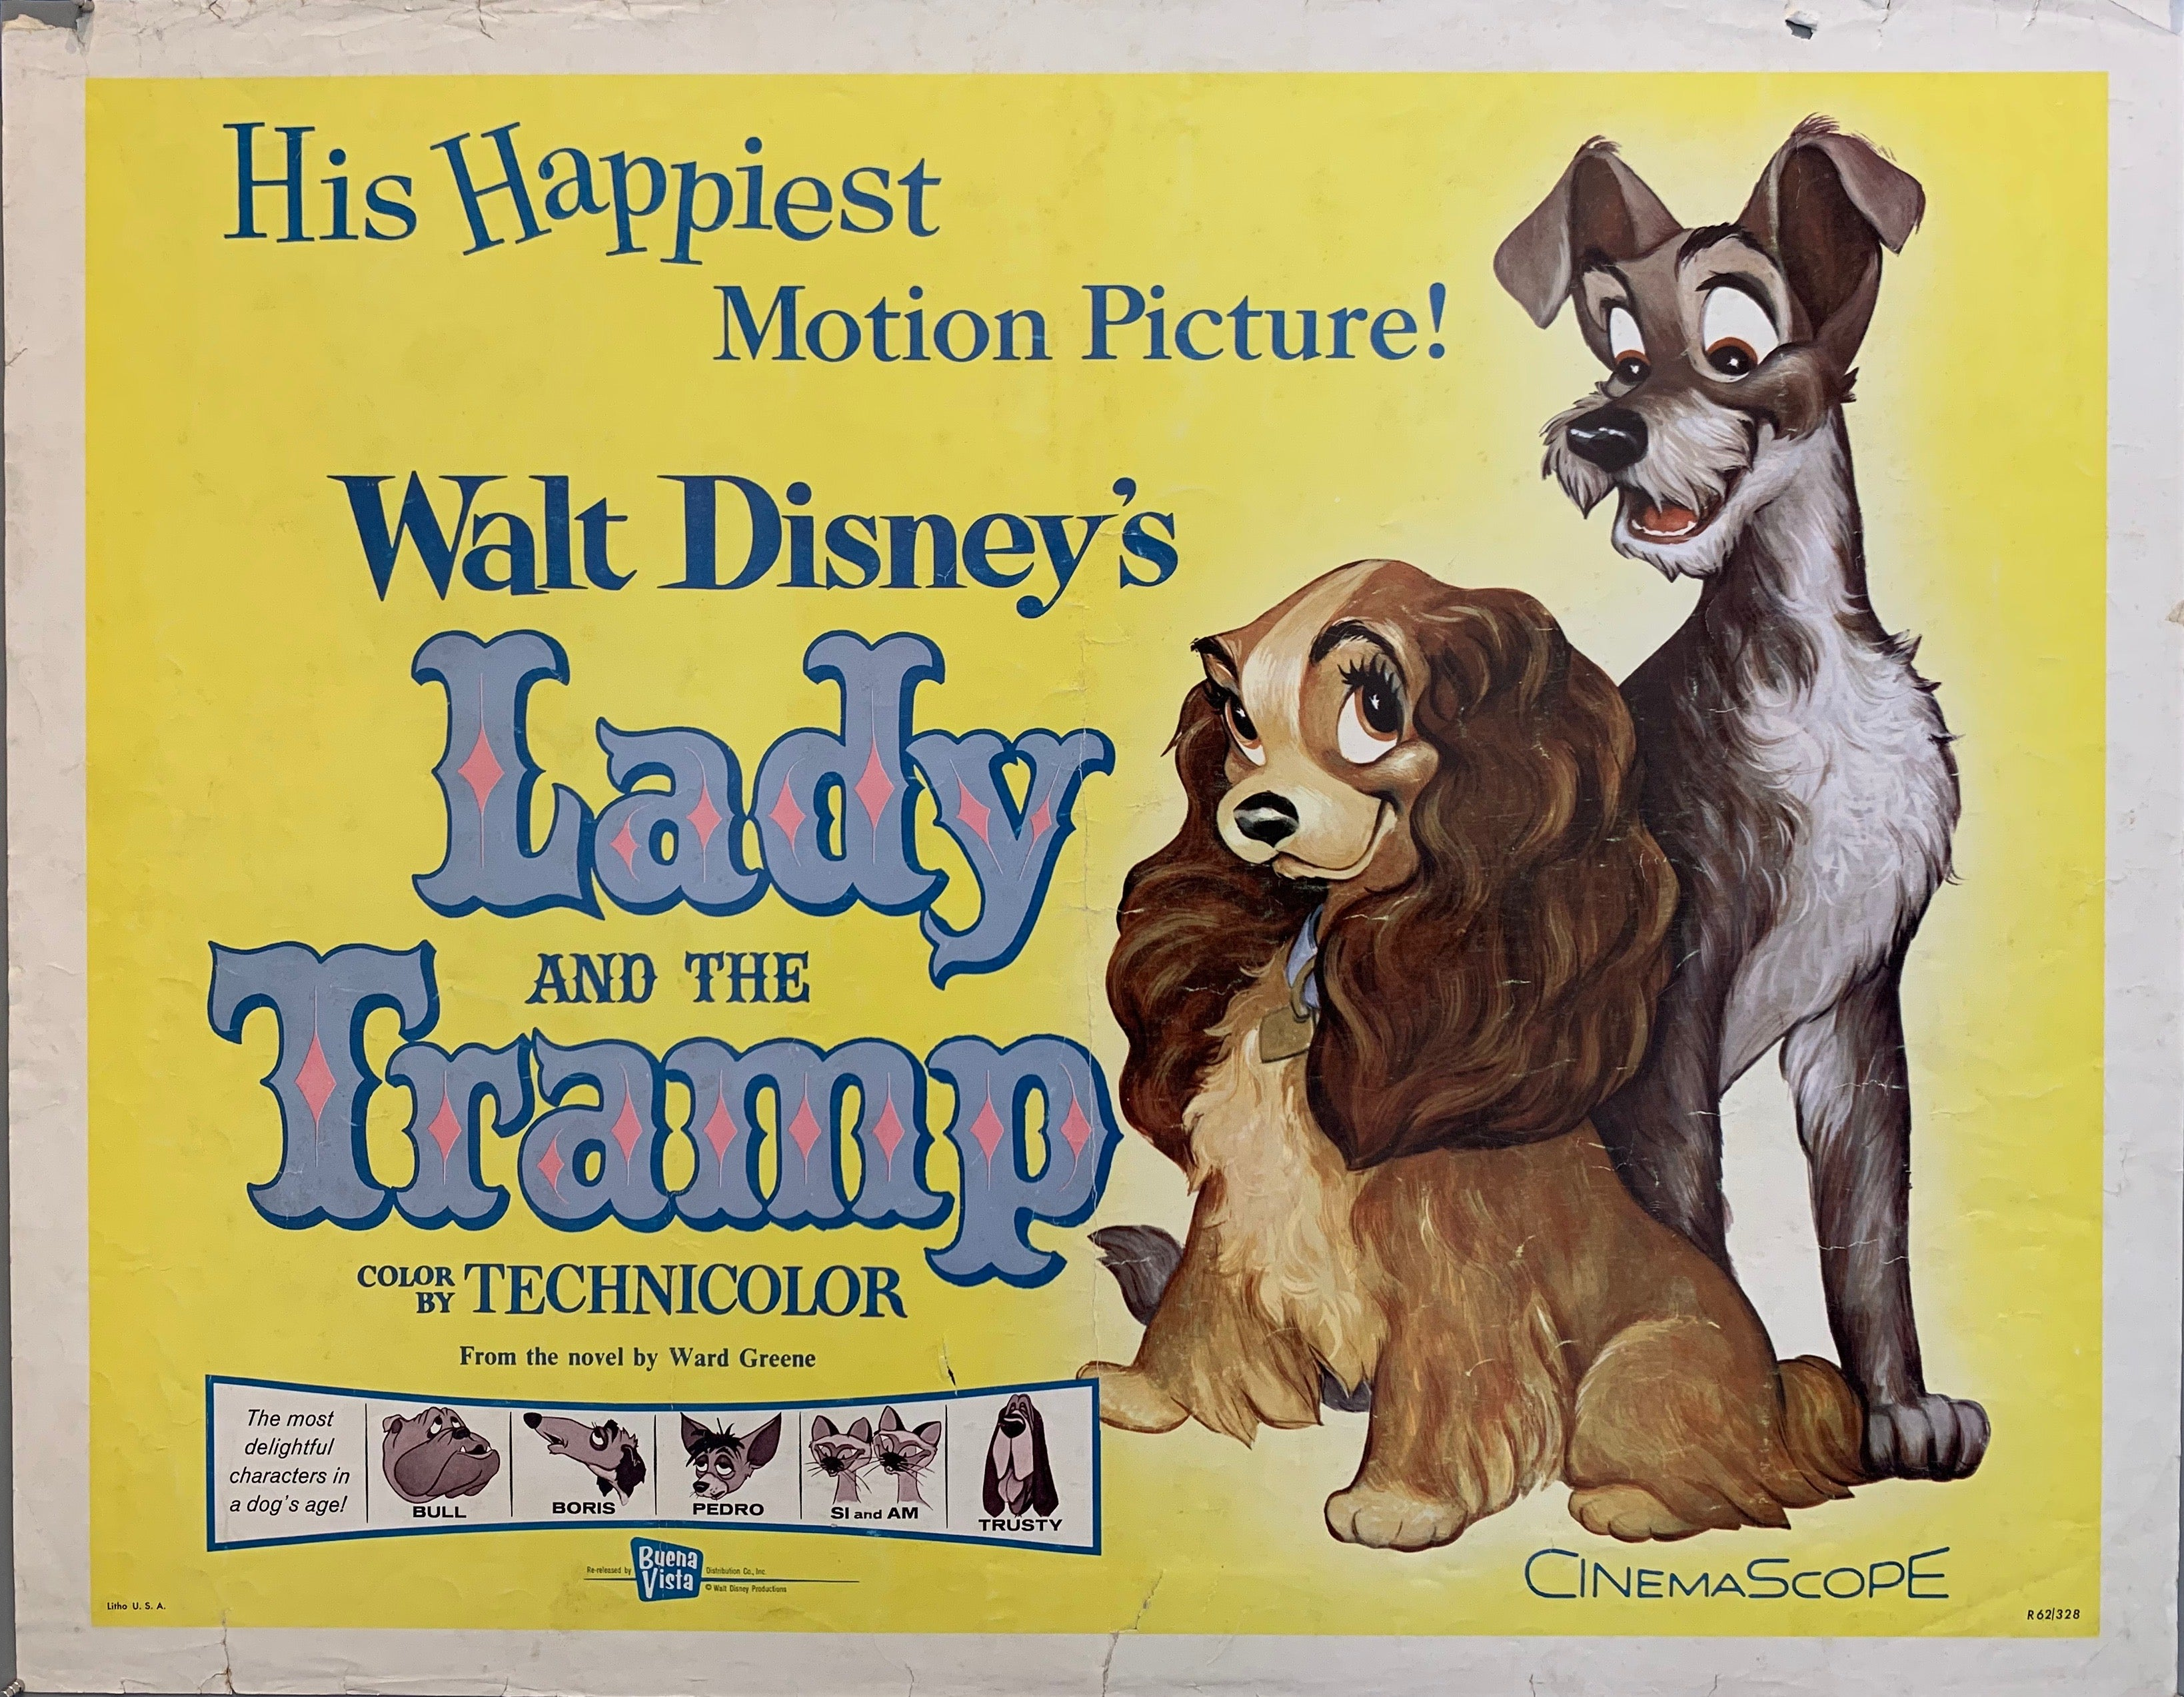 Movie Poster, Lady and The Tramp, two dogs looking at each other